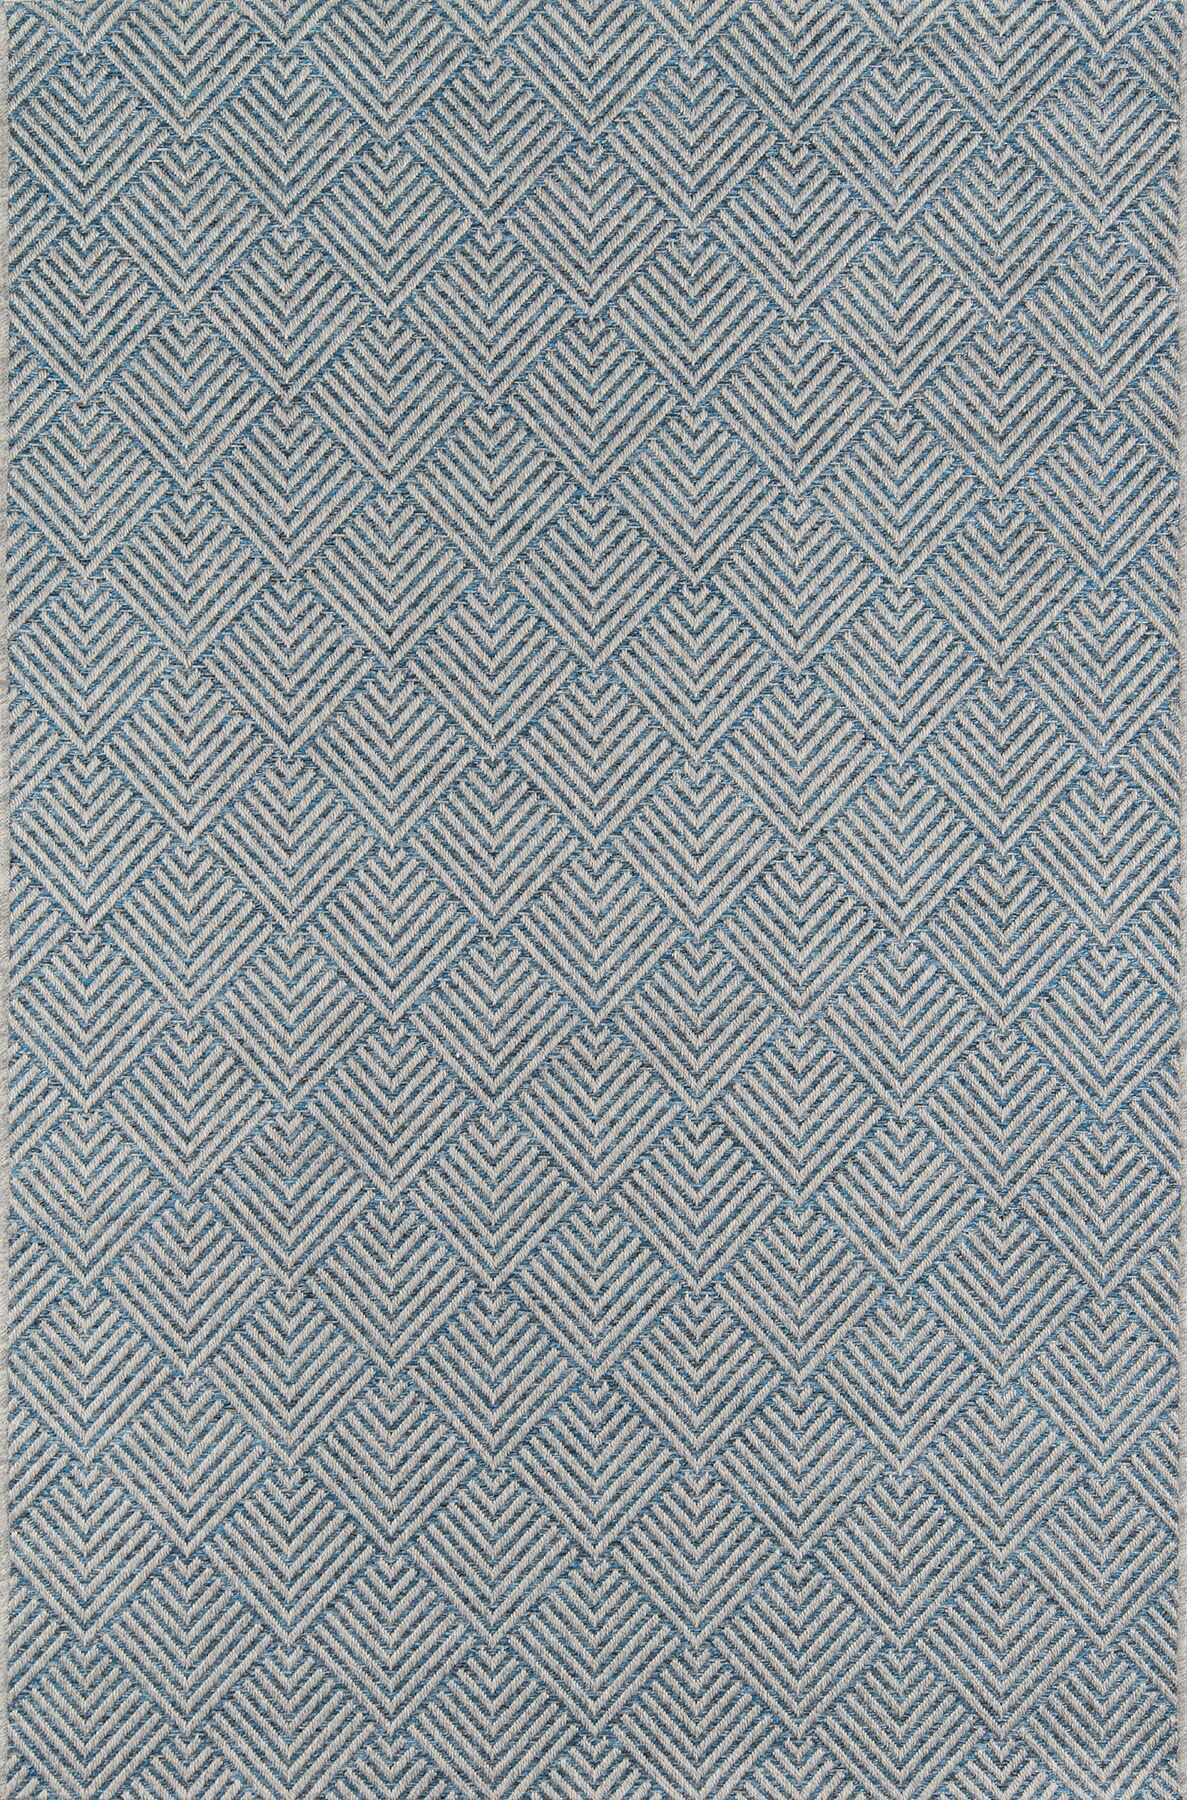 Milivoje Blue Area Rug Rug Size: Rectangle 7'10